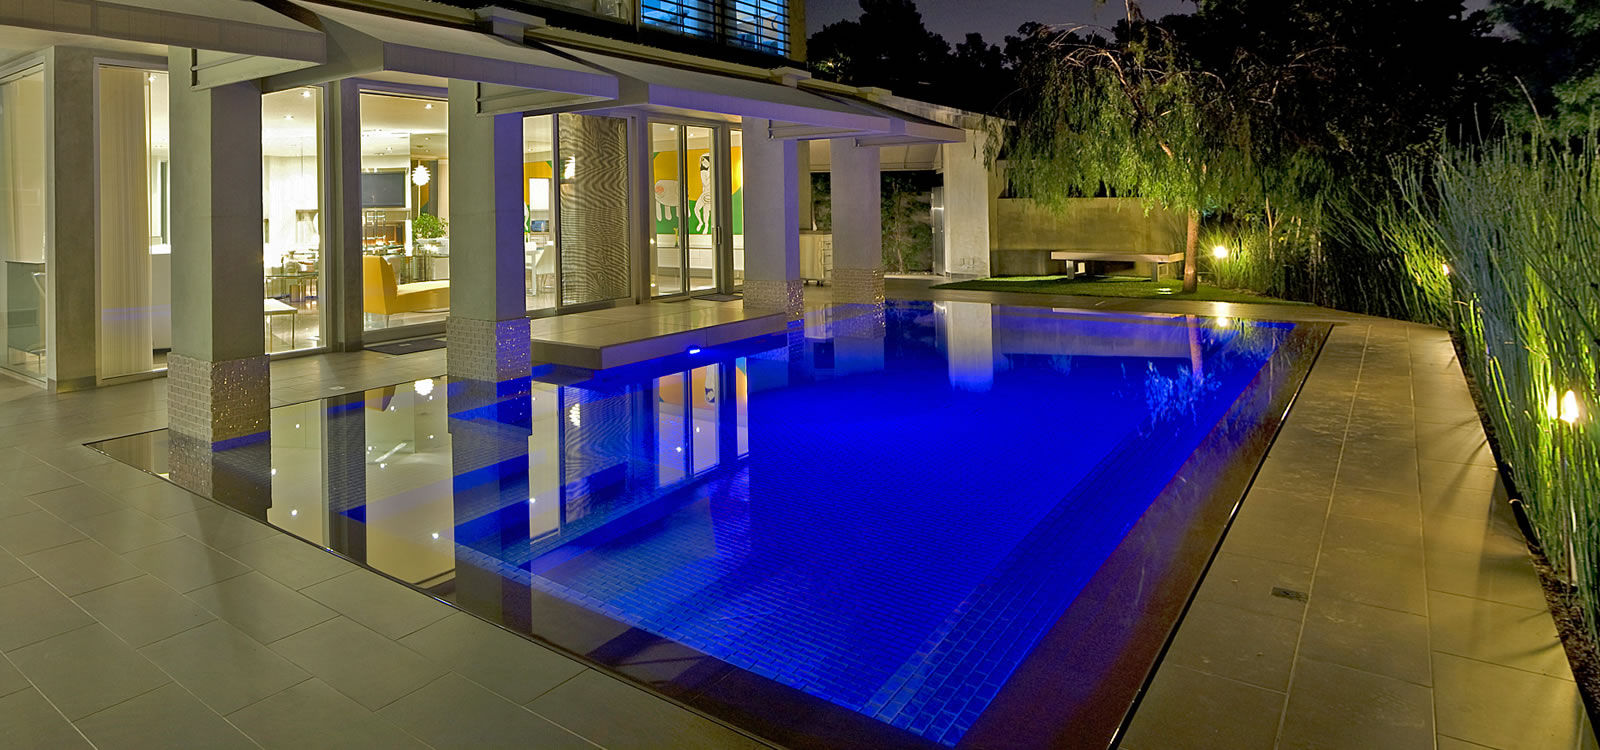 John Crystal Pools Los Angeles Southern California Pool Designer ...